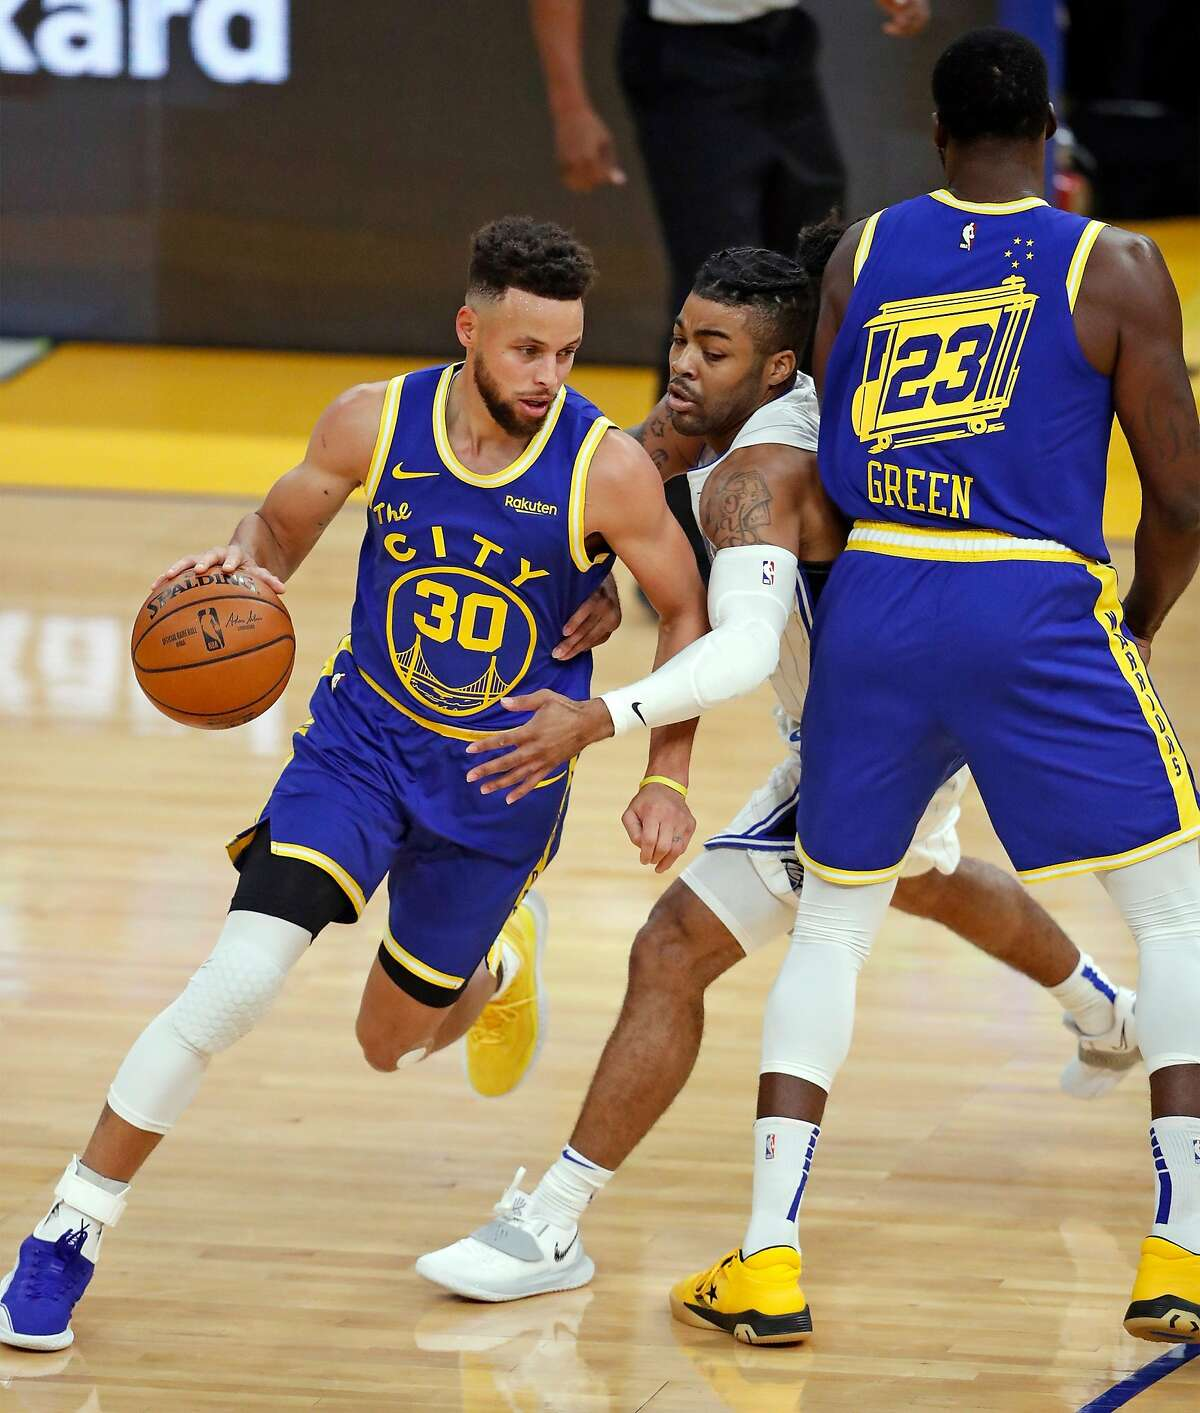 Golden State Warriors' Stephen Curry dribbles as Draymond Green screens Orlando Magic's Frank Mason III in 1st quarter during NBA game at Chase Center in San Francisco, Calif., on Thursday, February 11, 2021.